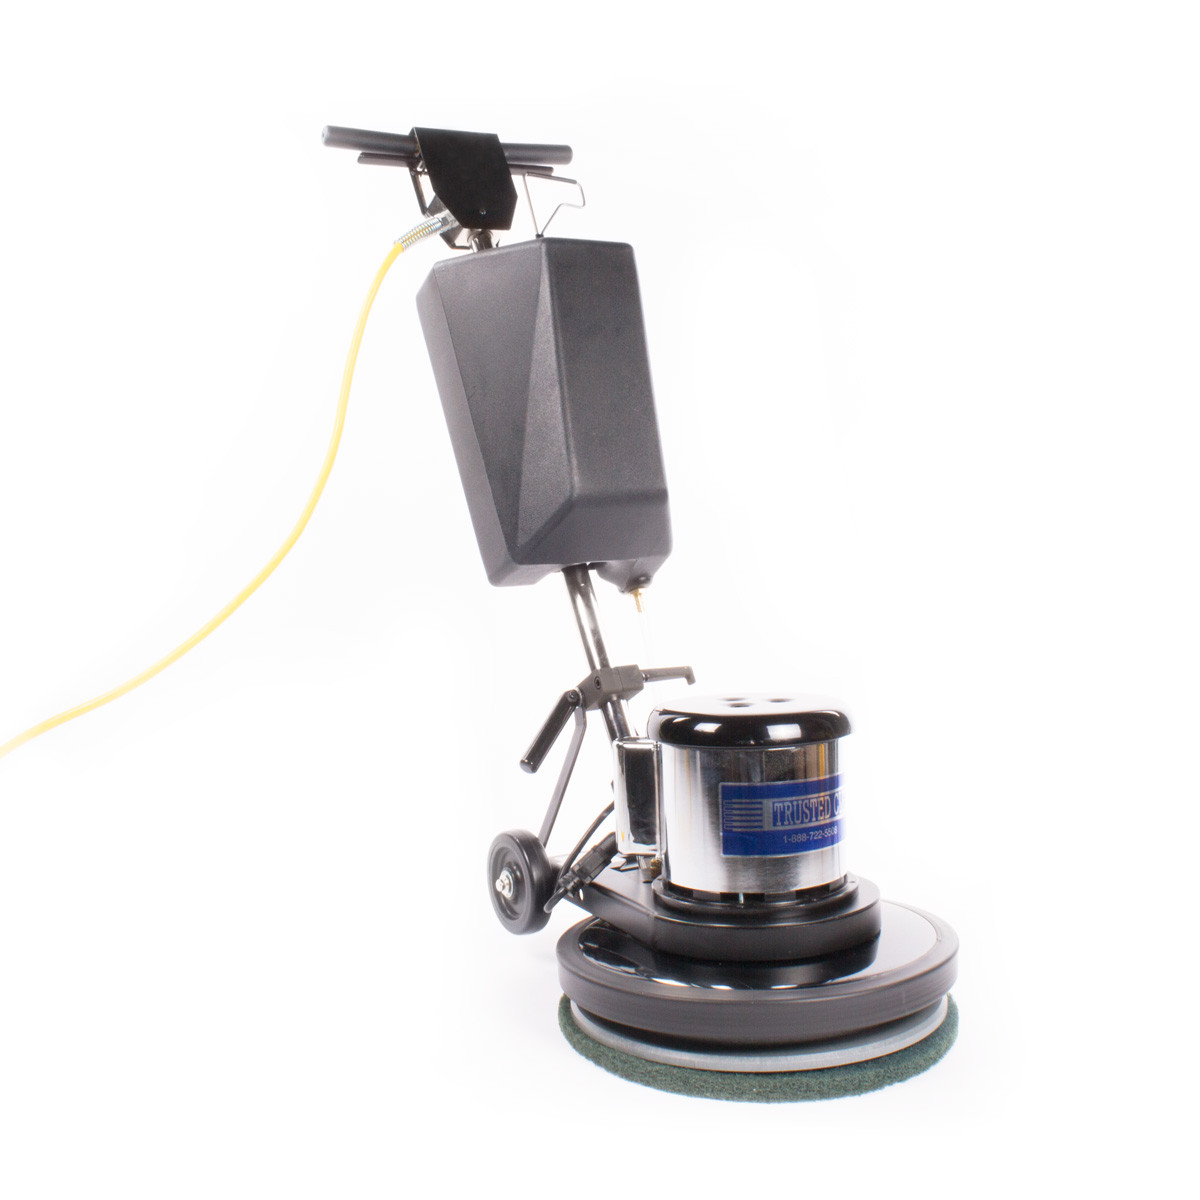 Carpet Scrubbing Machine With Shampoo Tank Buy This